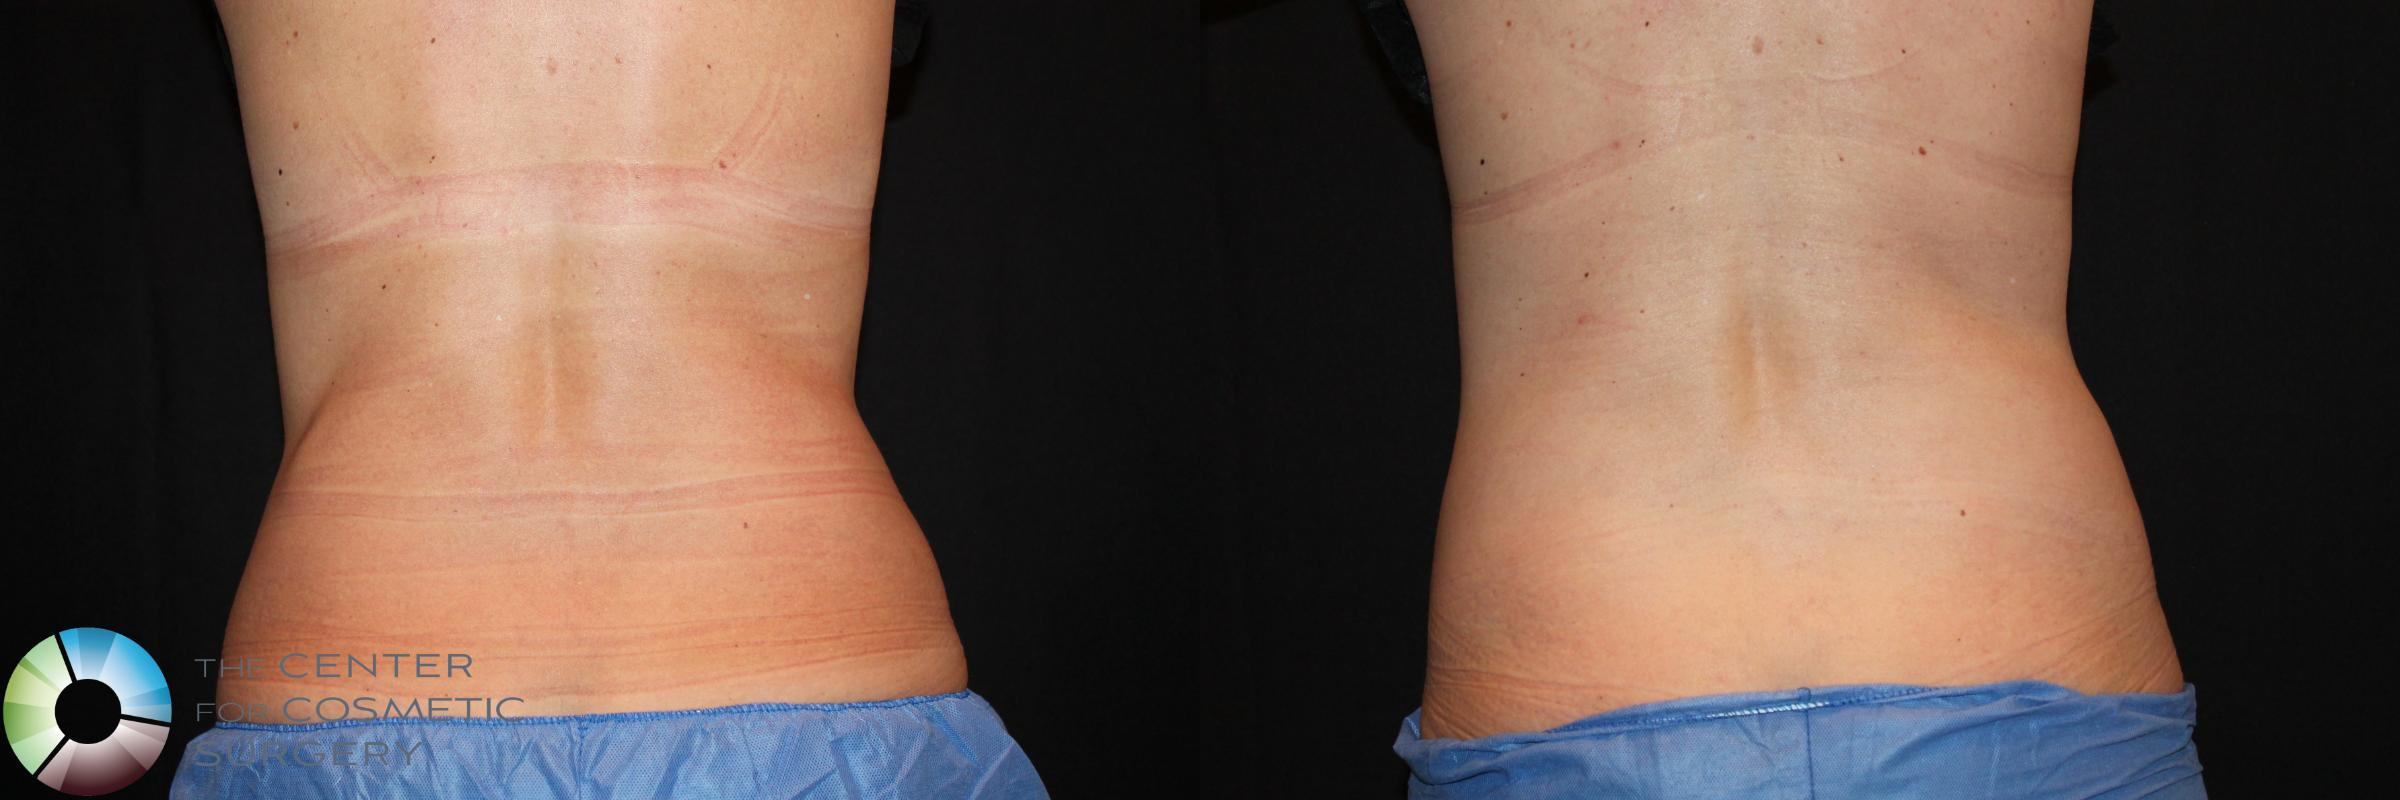 CoolSculpting Case 729 Before & After View #2 | Golden, CO | The Center for Cosmetic Surgery